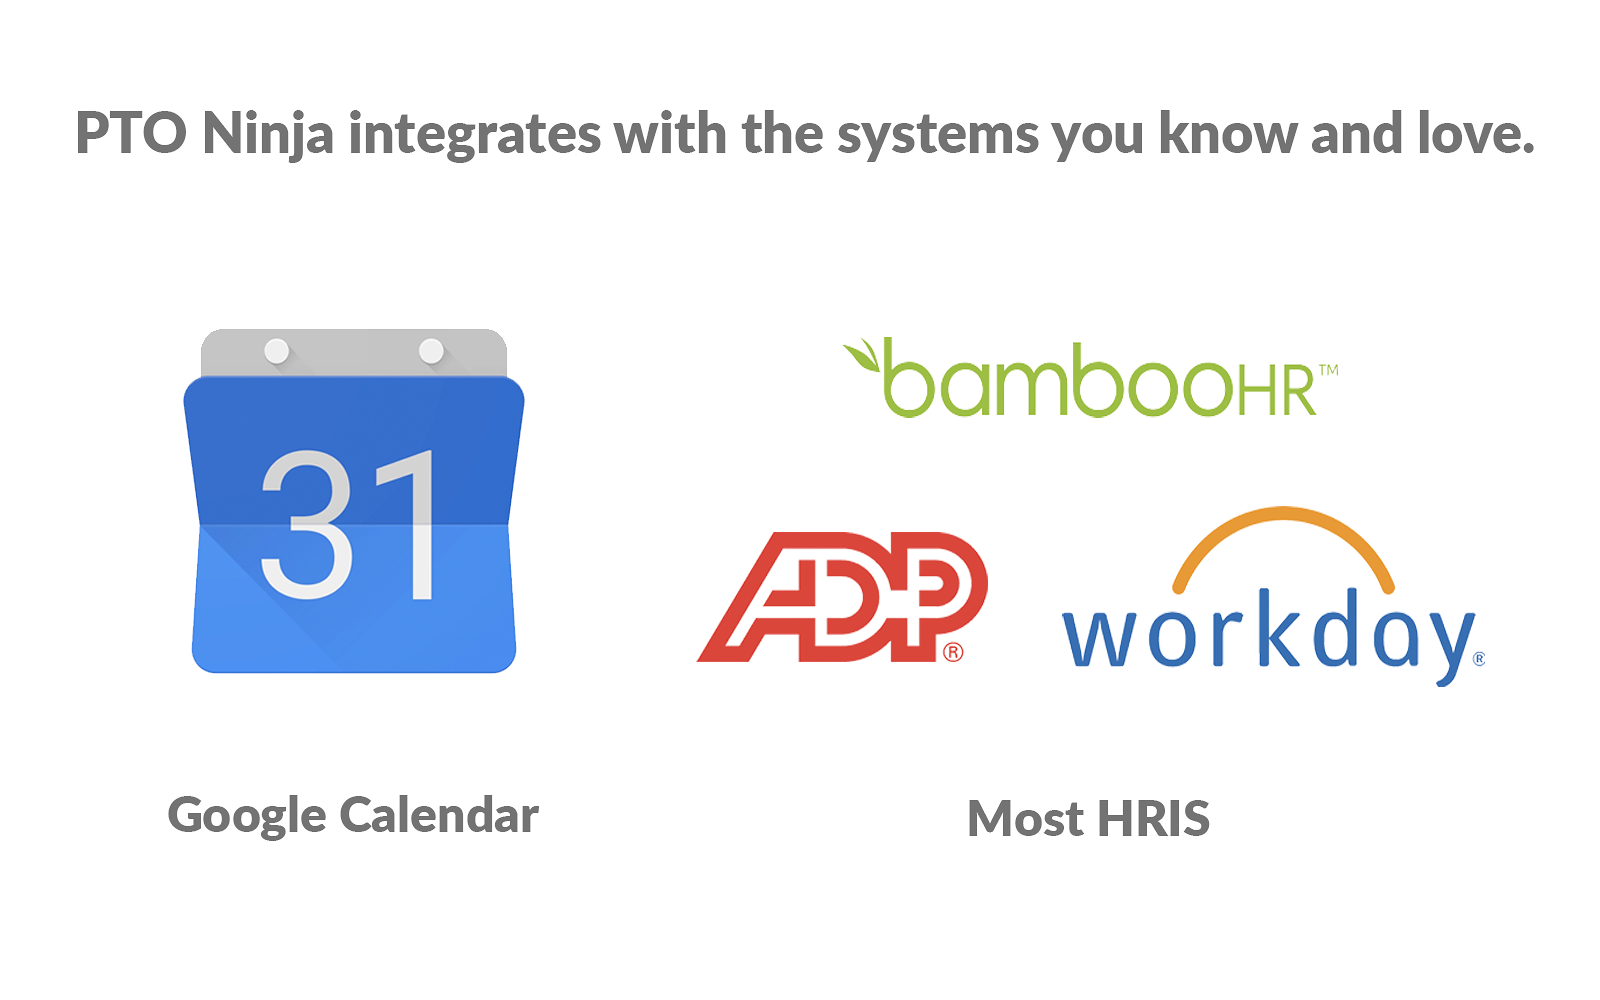 With integrations in GSuite, Outlook, and most HRIS - including BambooHR, ADP, Workday and more -  PTO Ninja is built to handle all of your time off needs.